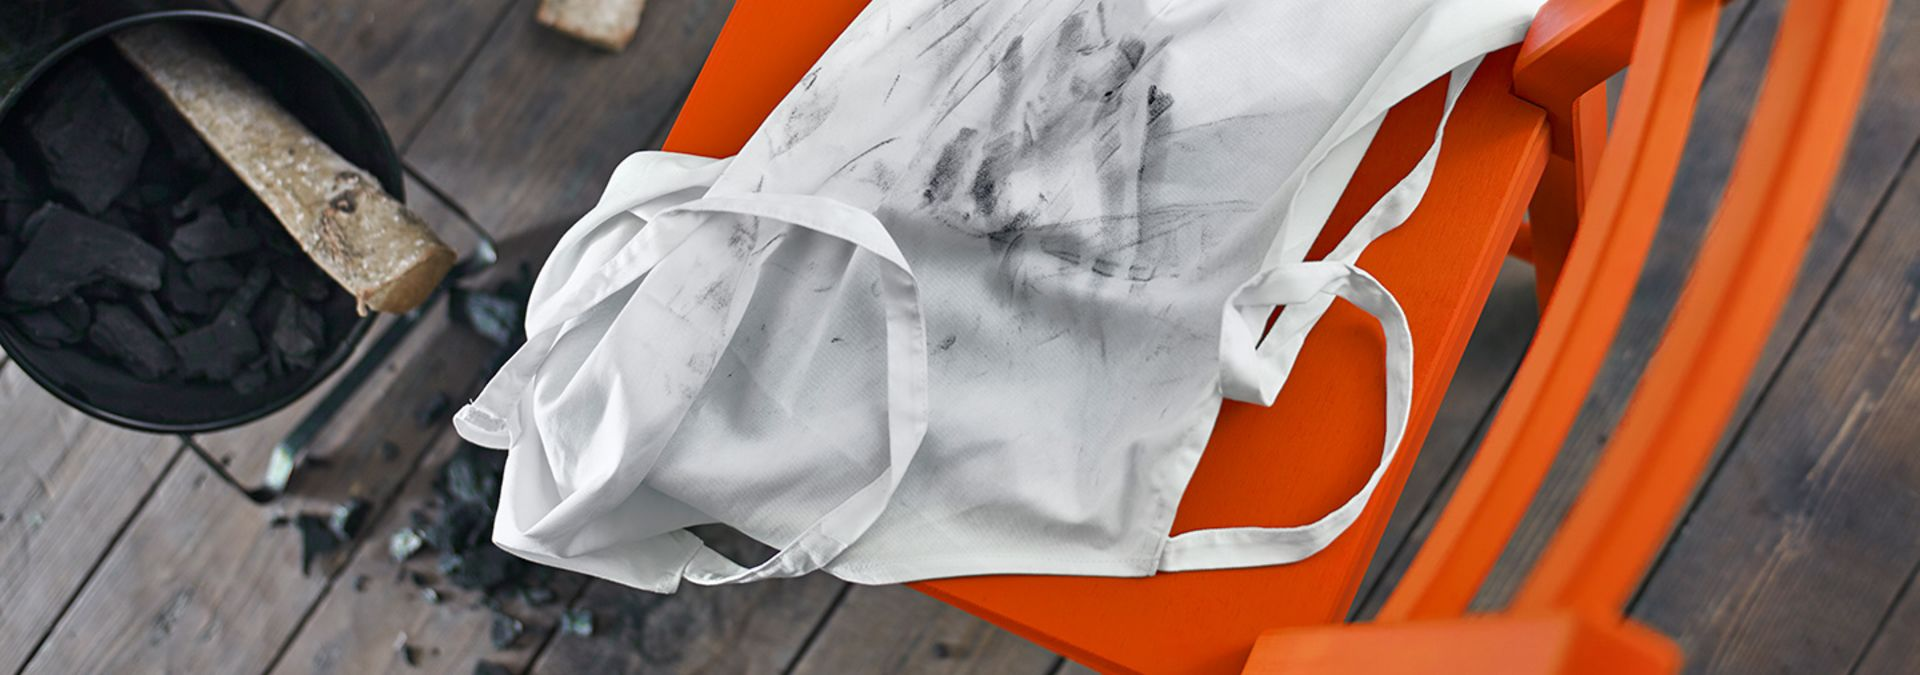 Soot stains on a white apron